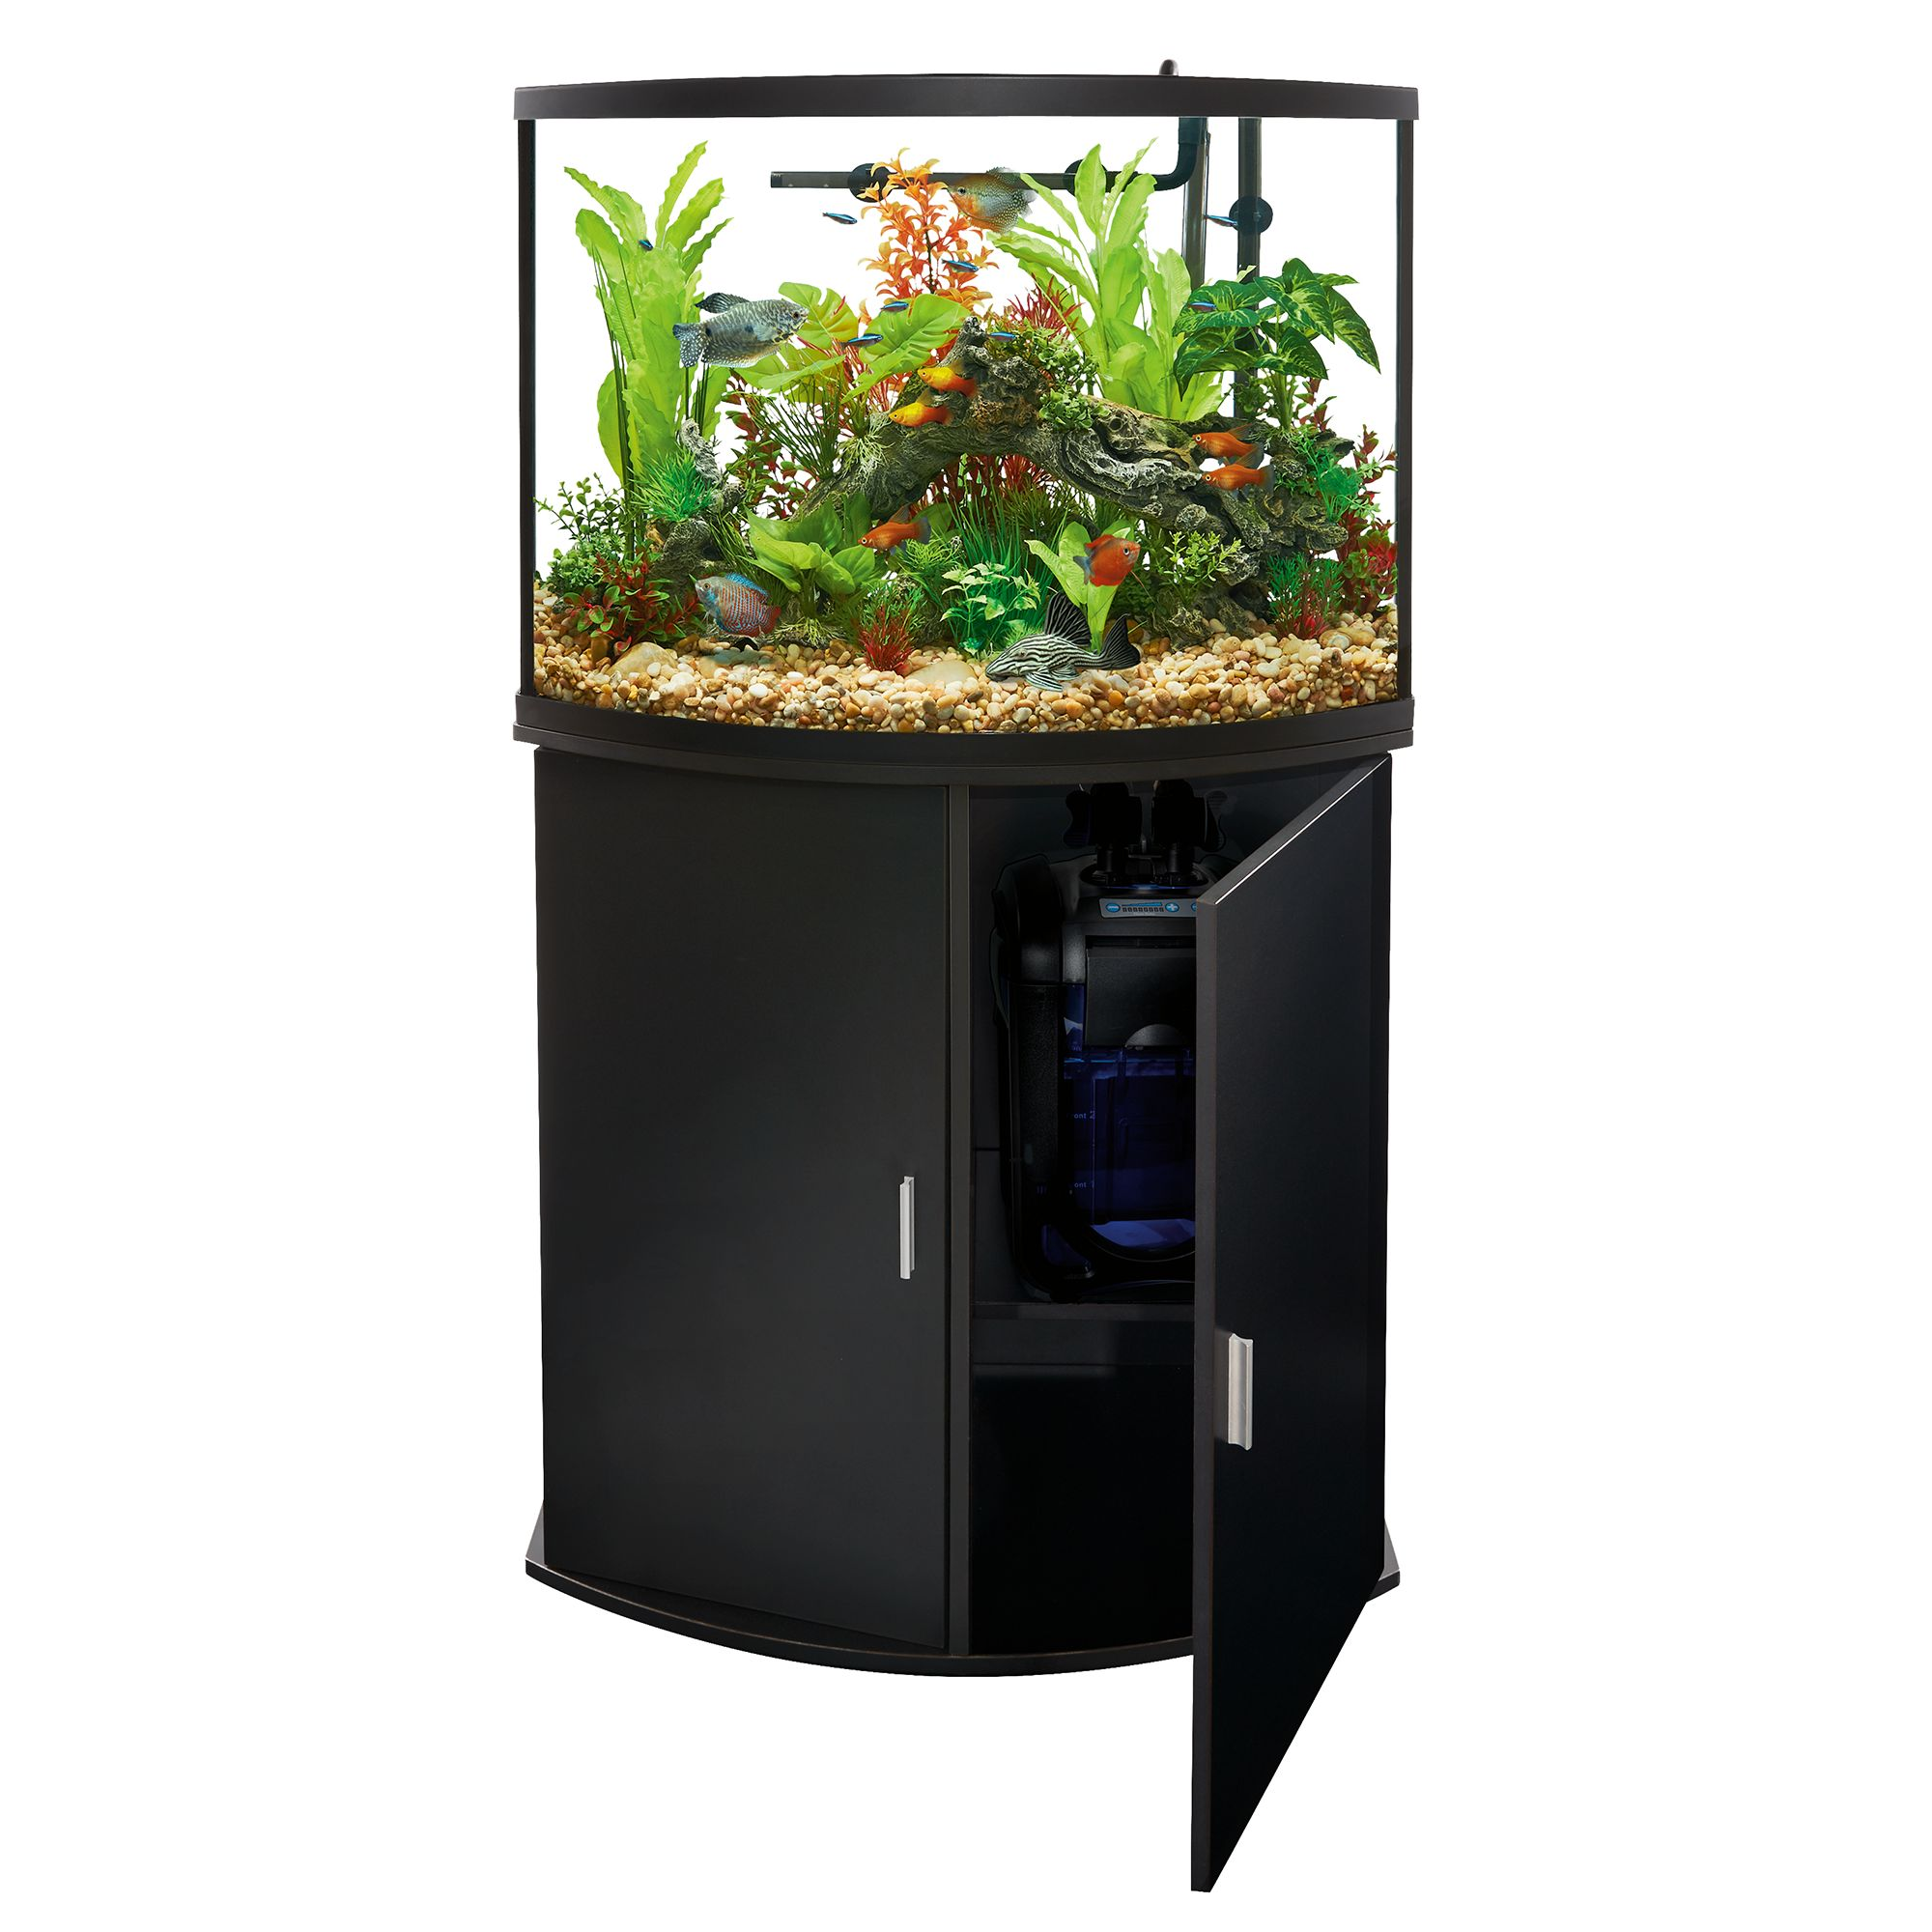 Top Fin Bowfront Aquarium & Stand Ensemble, 36 Gallon